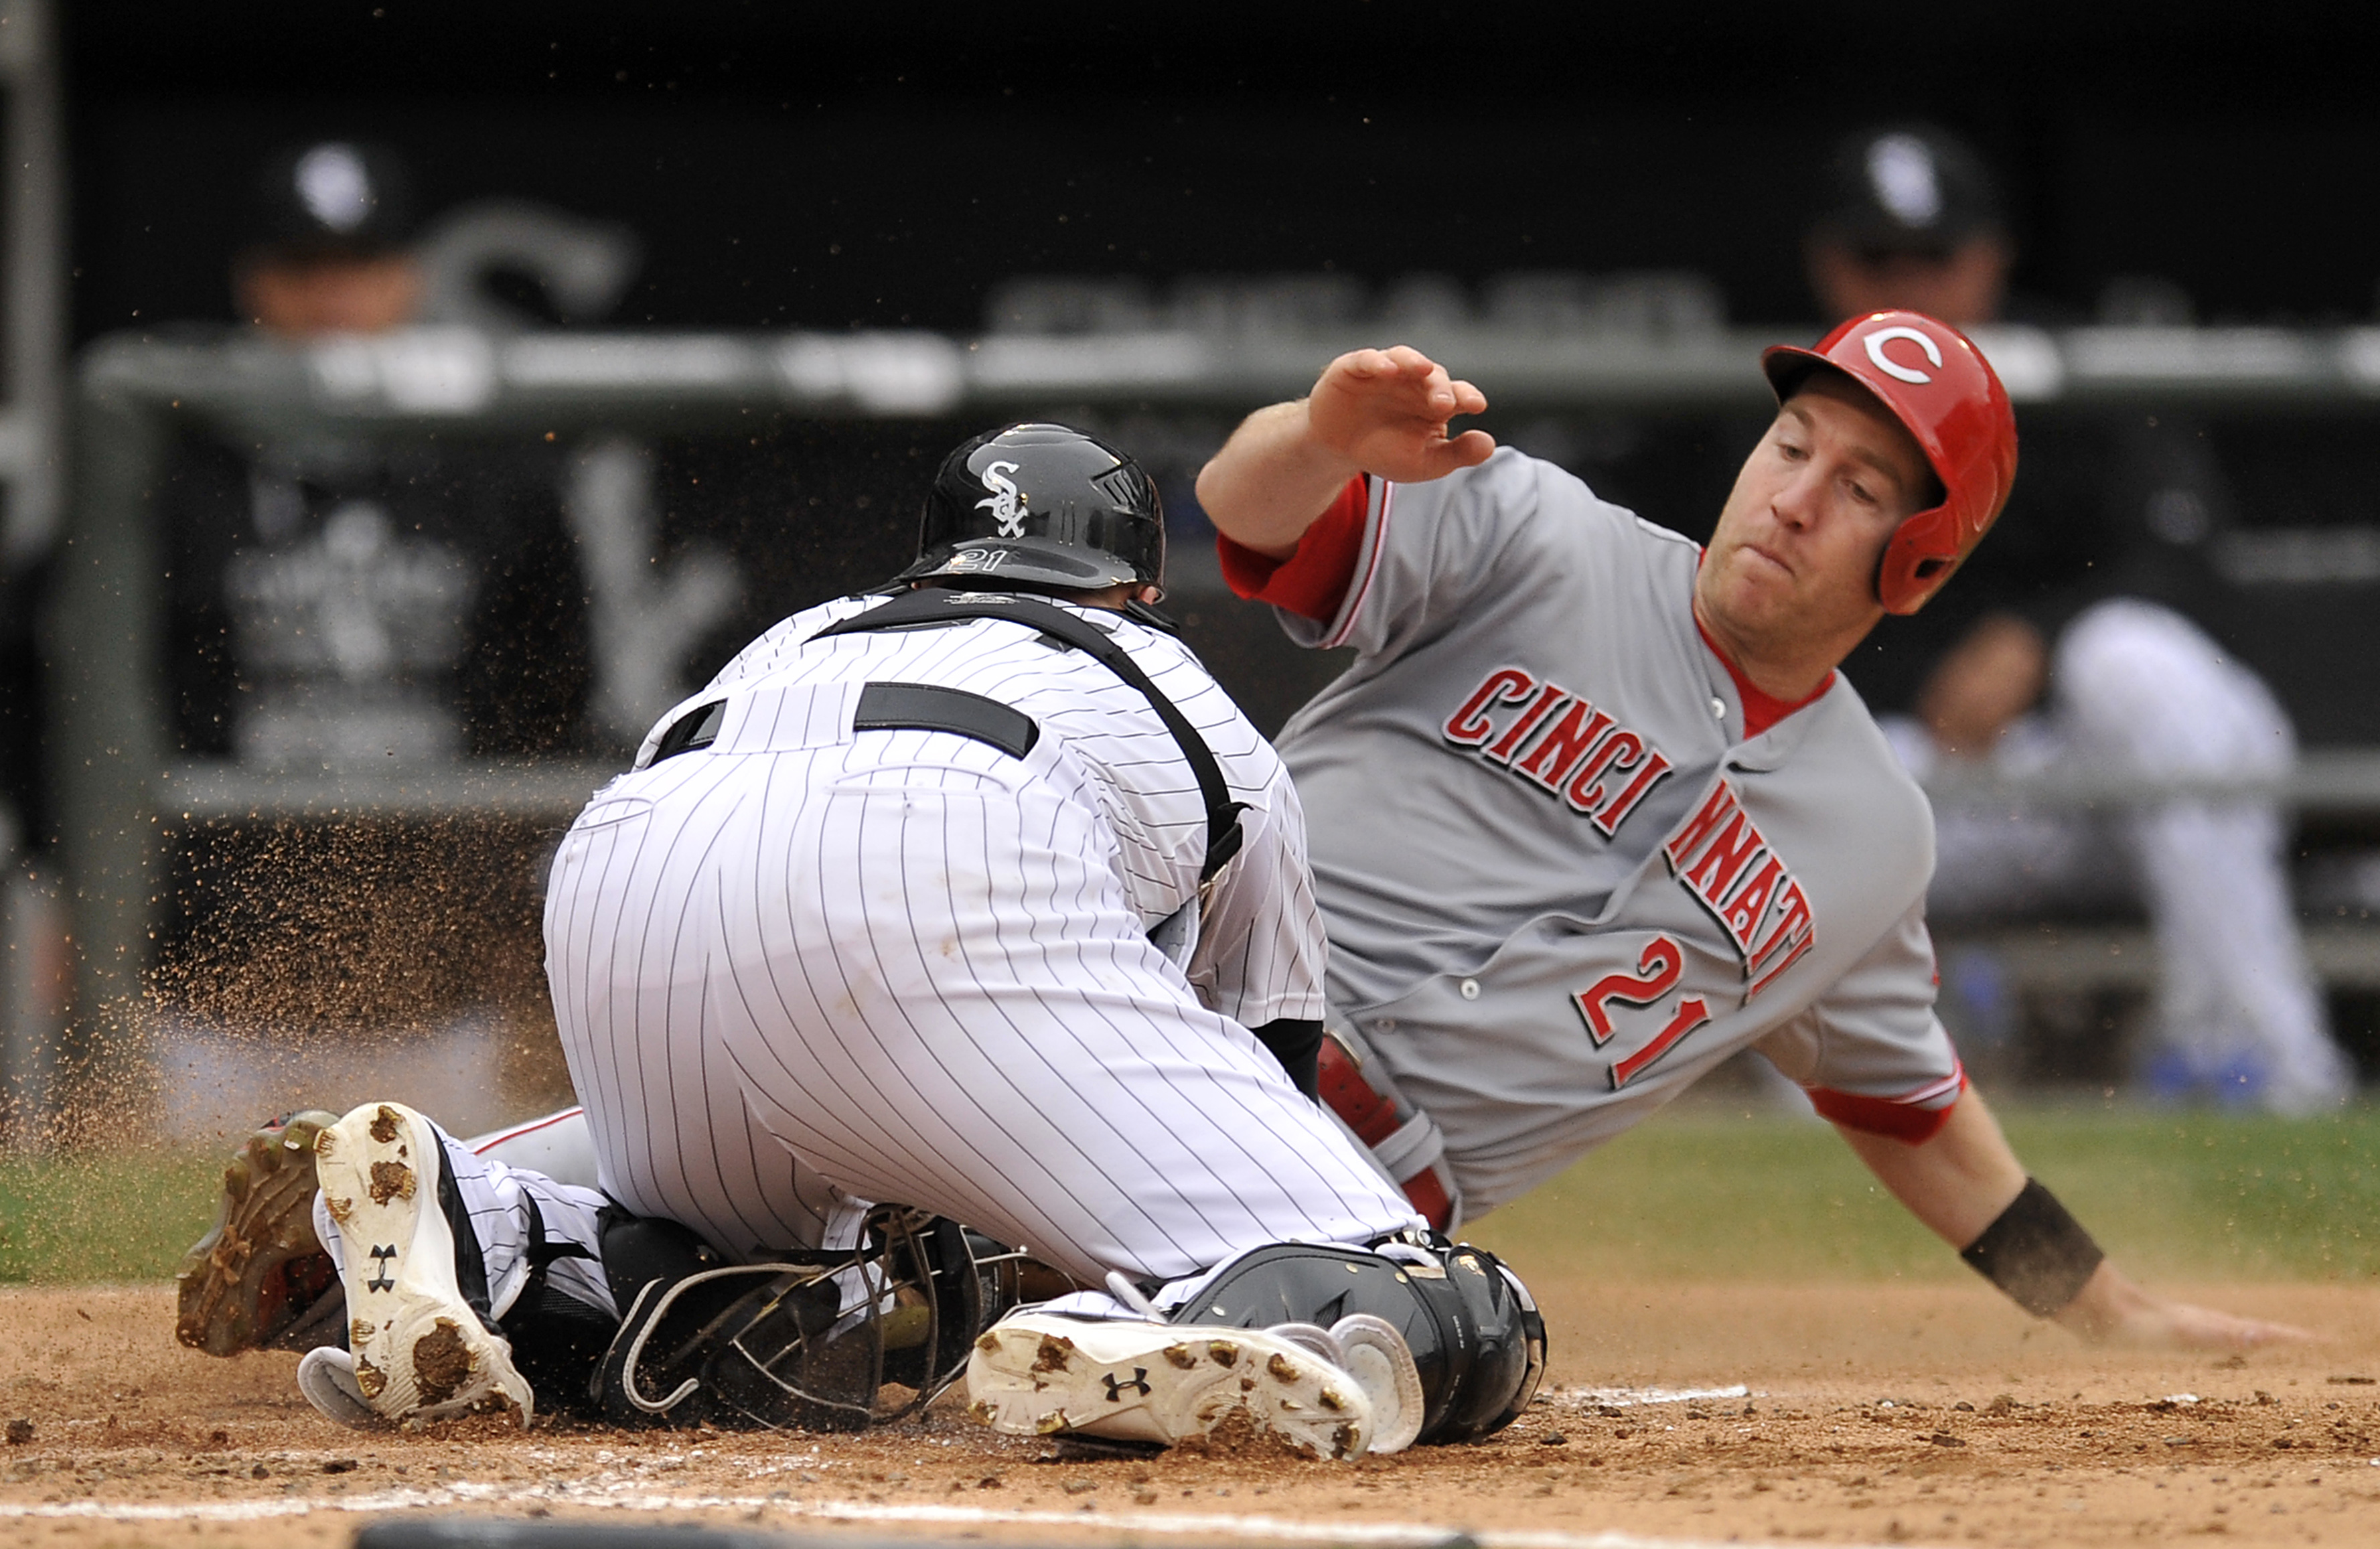 Cincinnati Reds' Todd Fraizer (21) slides into home plate while being tagged out by Chicago White Sox catcher Tyler Flowers during the third inning of the first game of a baseball doubleheader Saturday, May 9, 2015, in Chicago. (AP Photo/Paul Beaty)